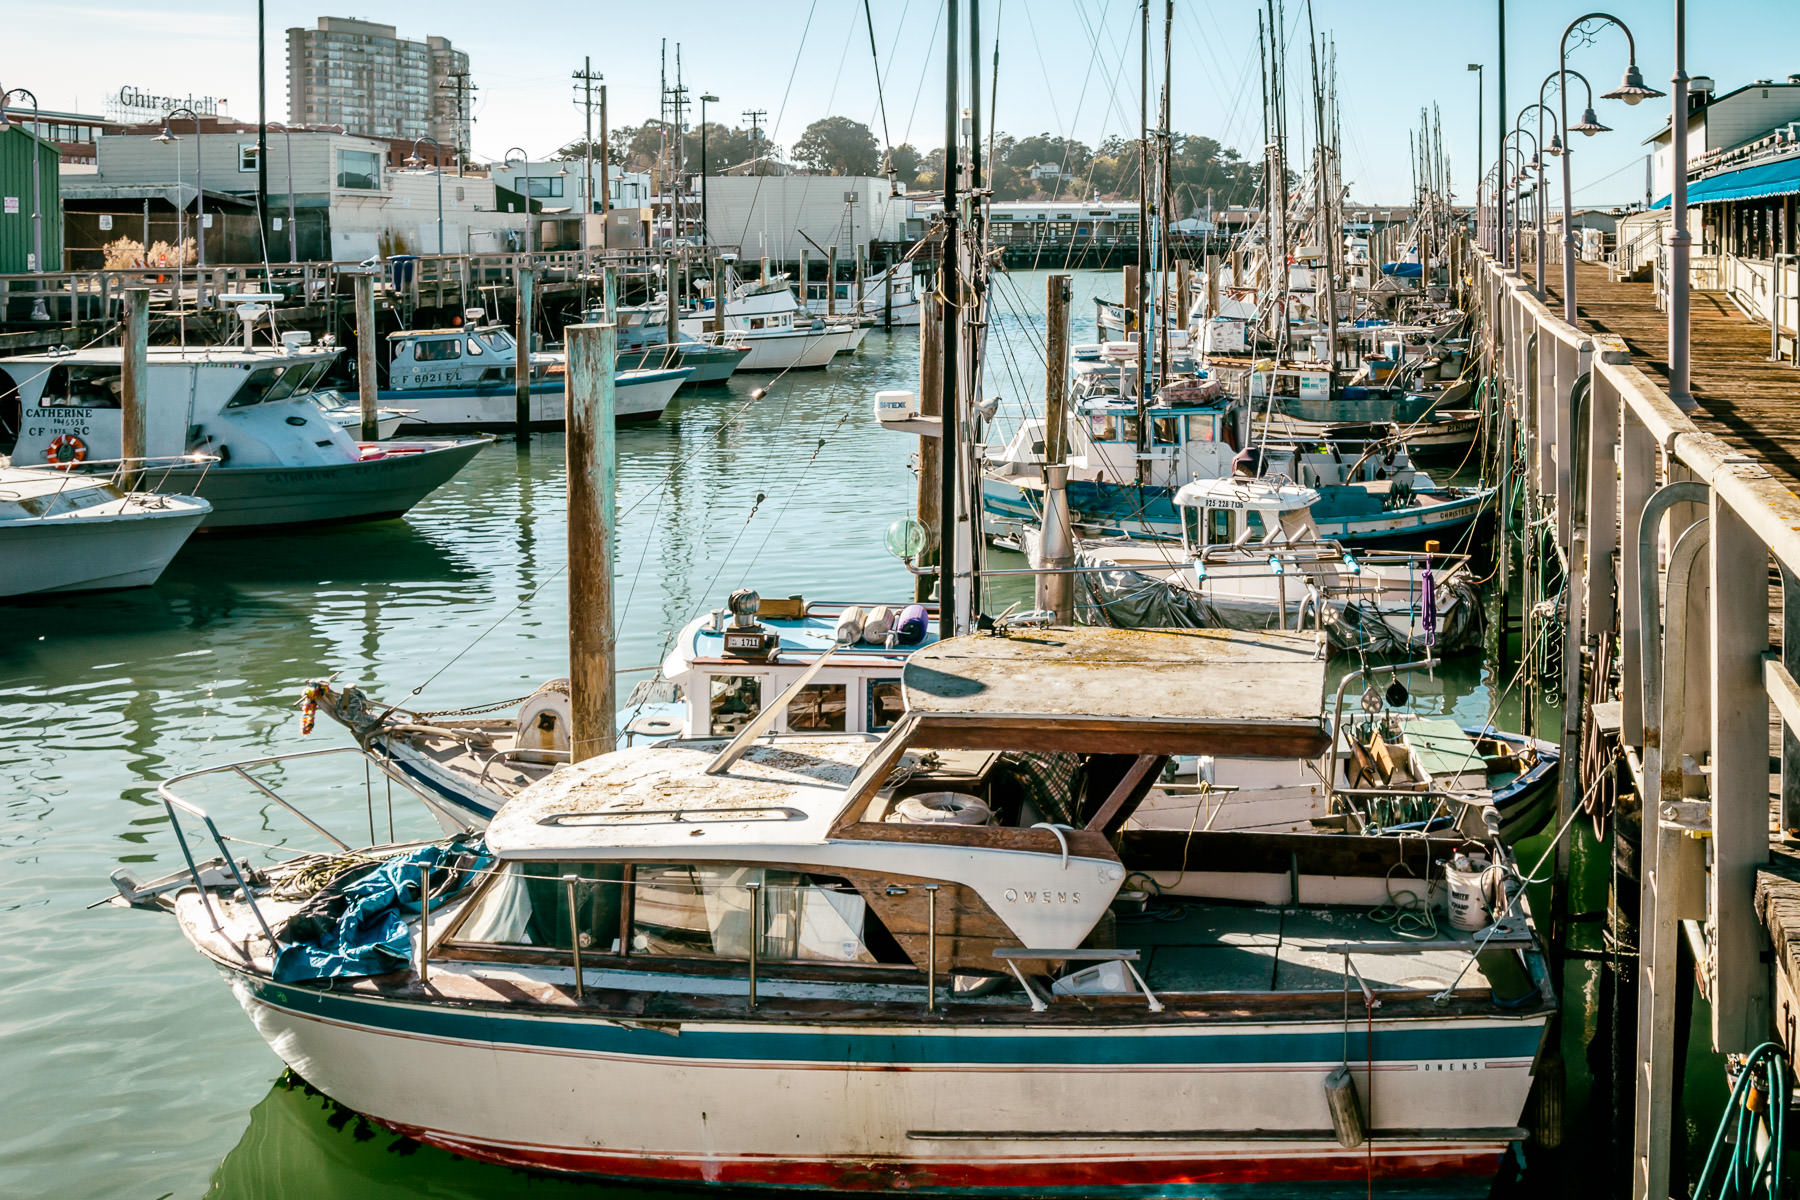 Boats docked at a pier along San Francisco's Fisherman's Wharf.